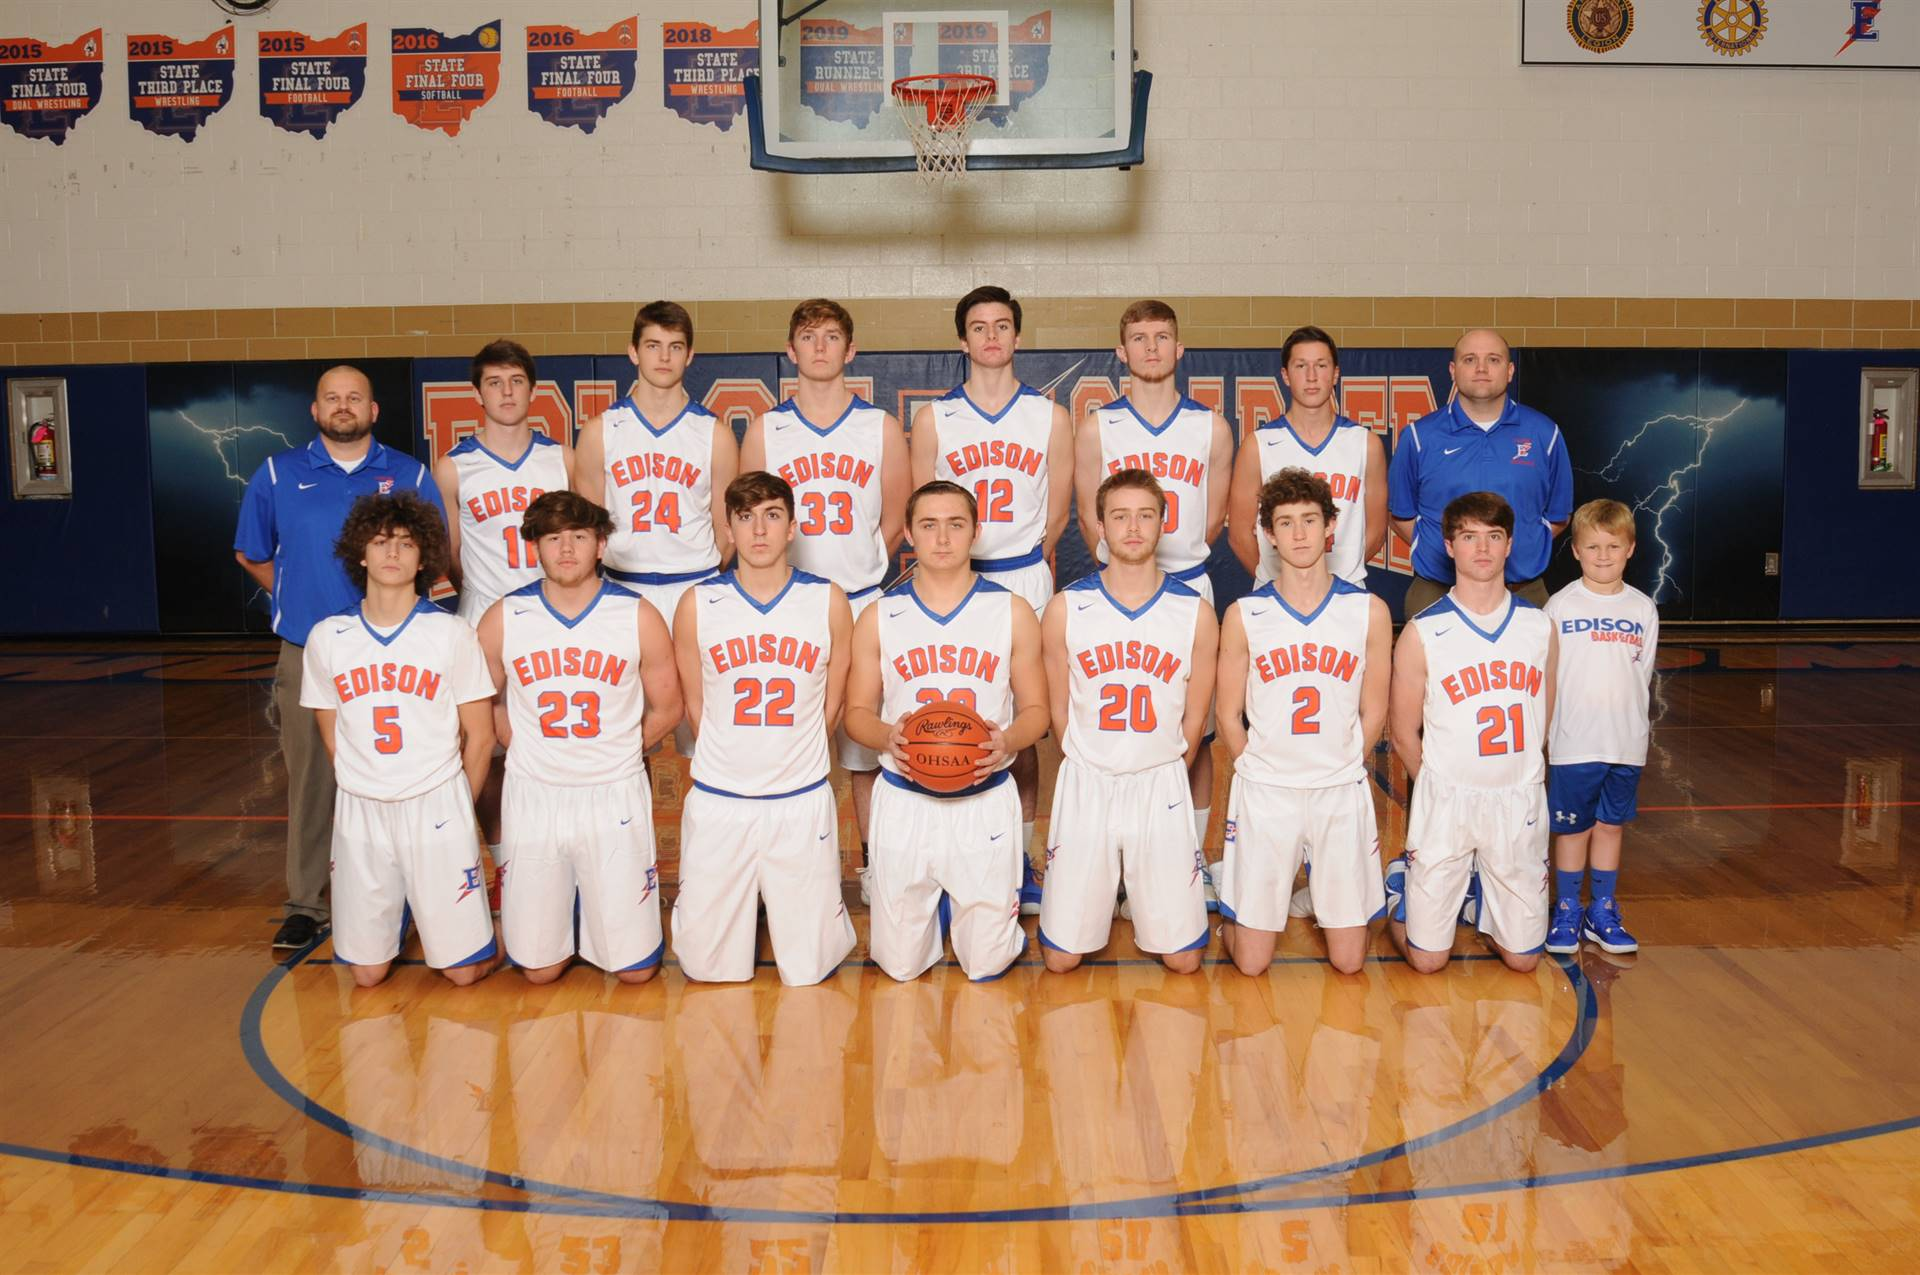 2019 Varsity Boys Basketball Team